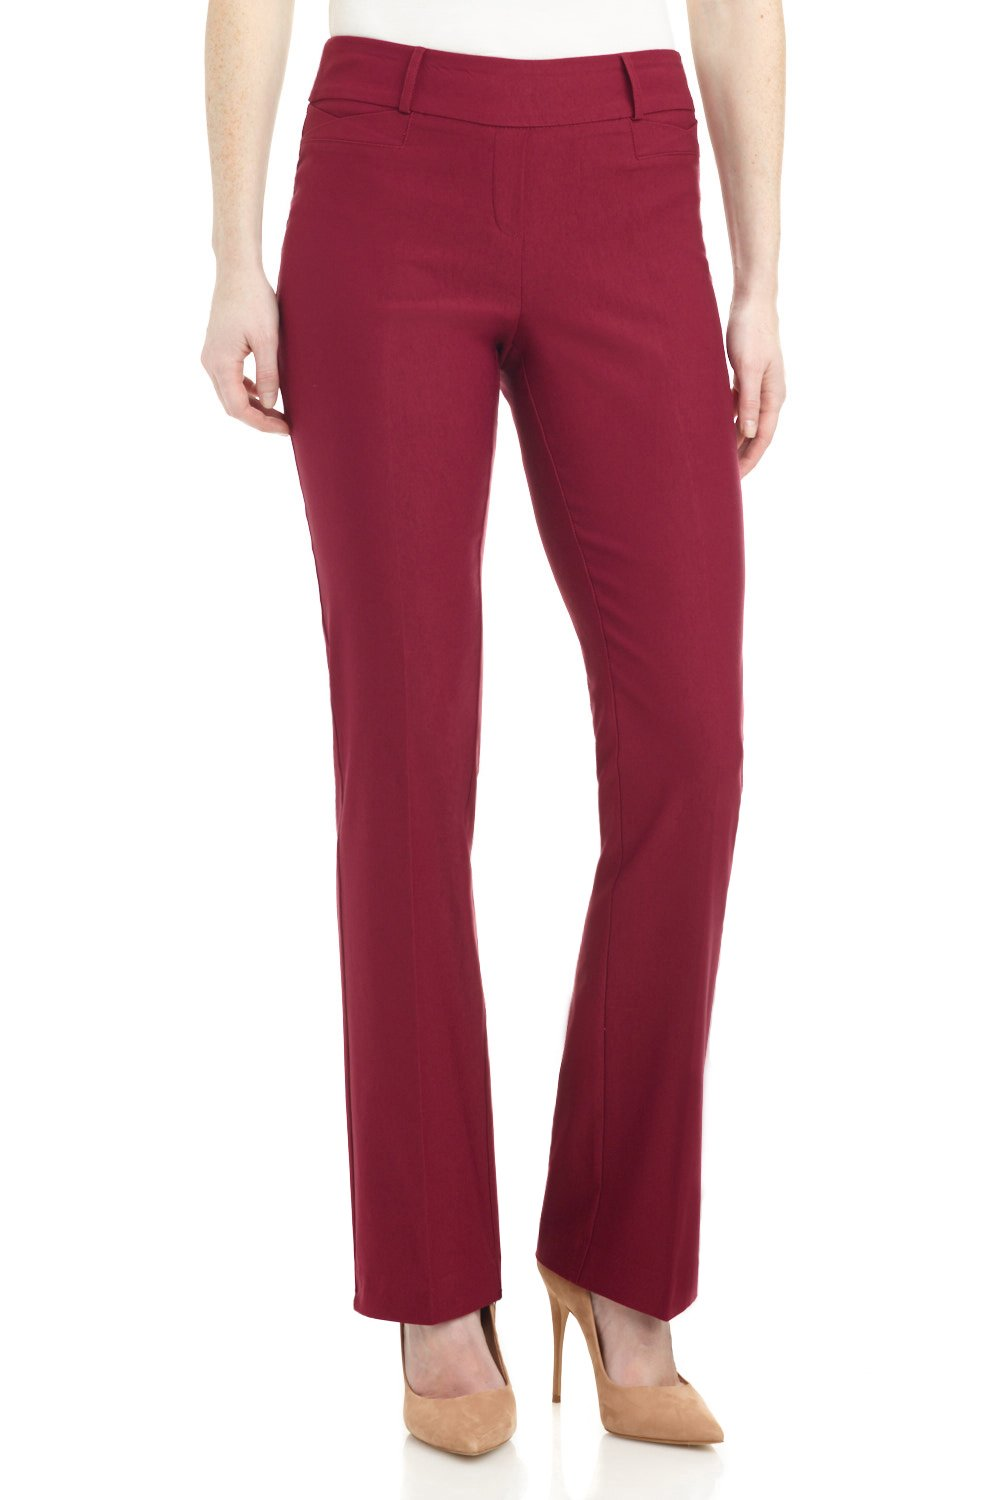 Rekucci Women's Ease In To Comfort Fit Barely Bootcut Stretch Pants (14,Burgundy) by Rekucci (Image #1)